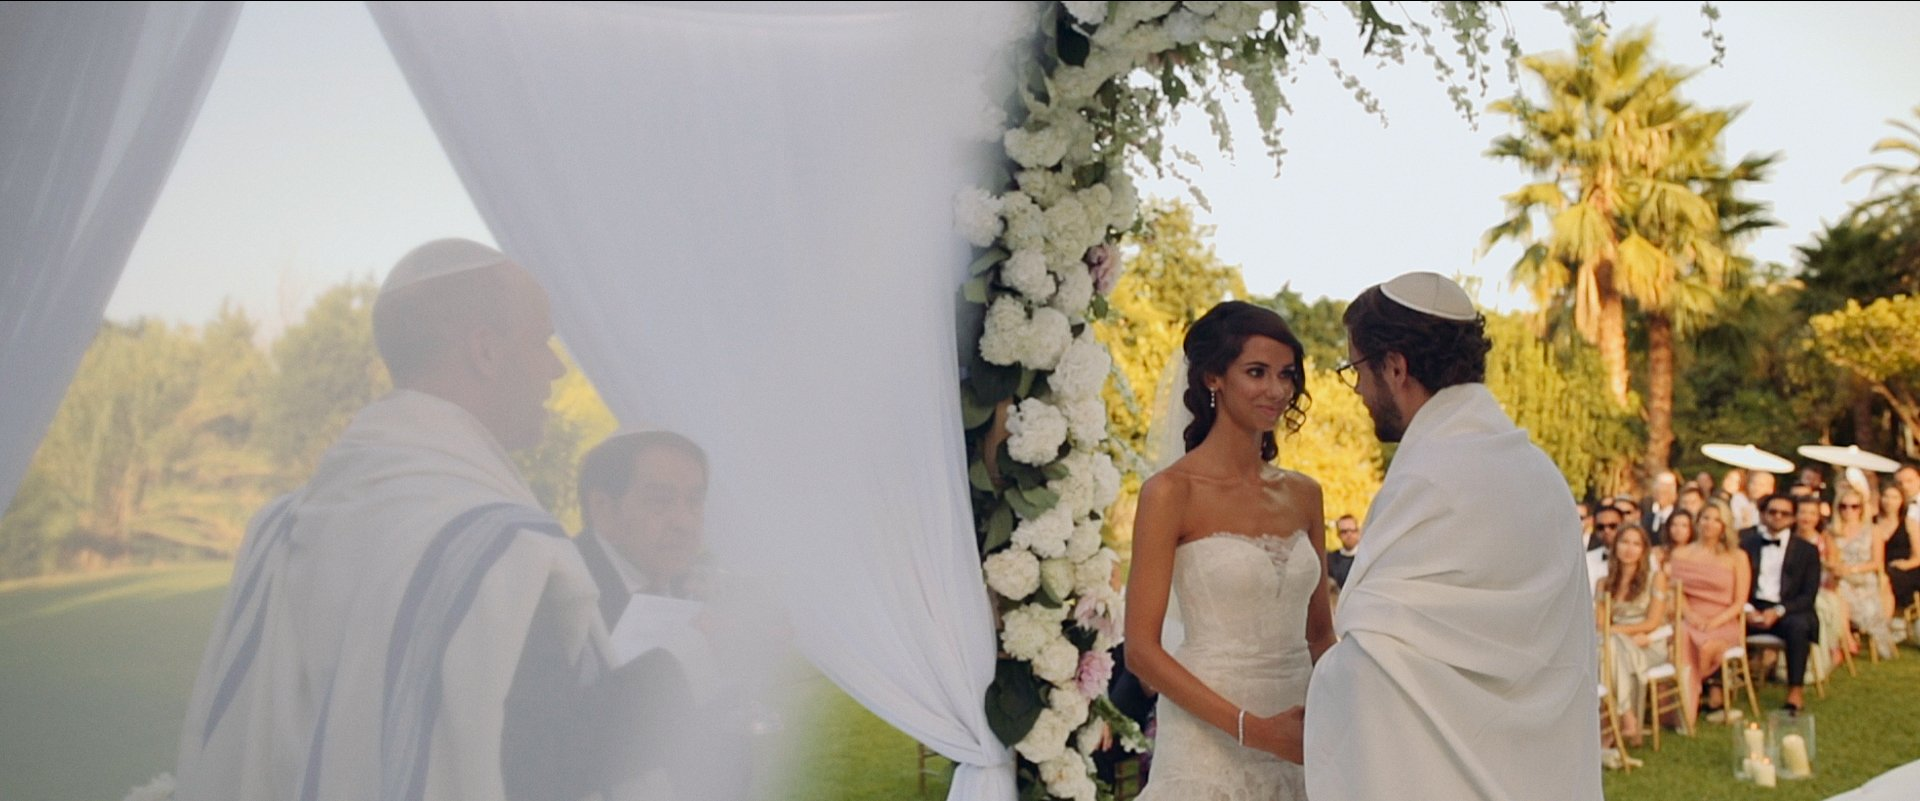 Wedding Videos Marbella